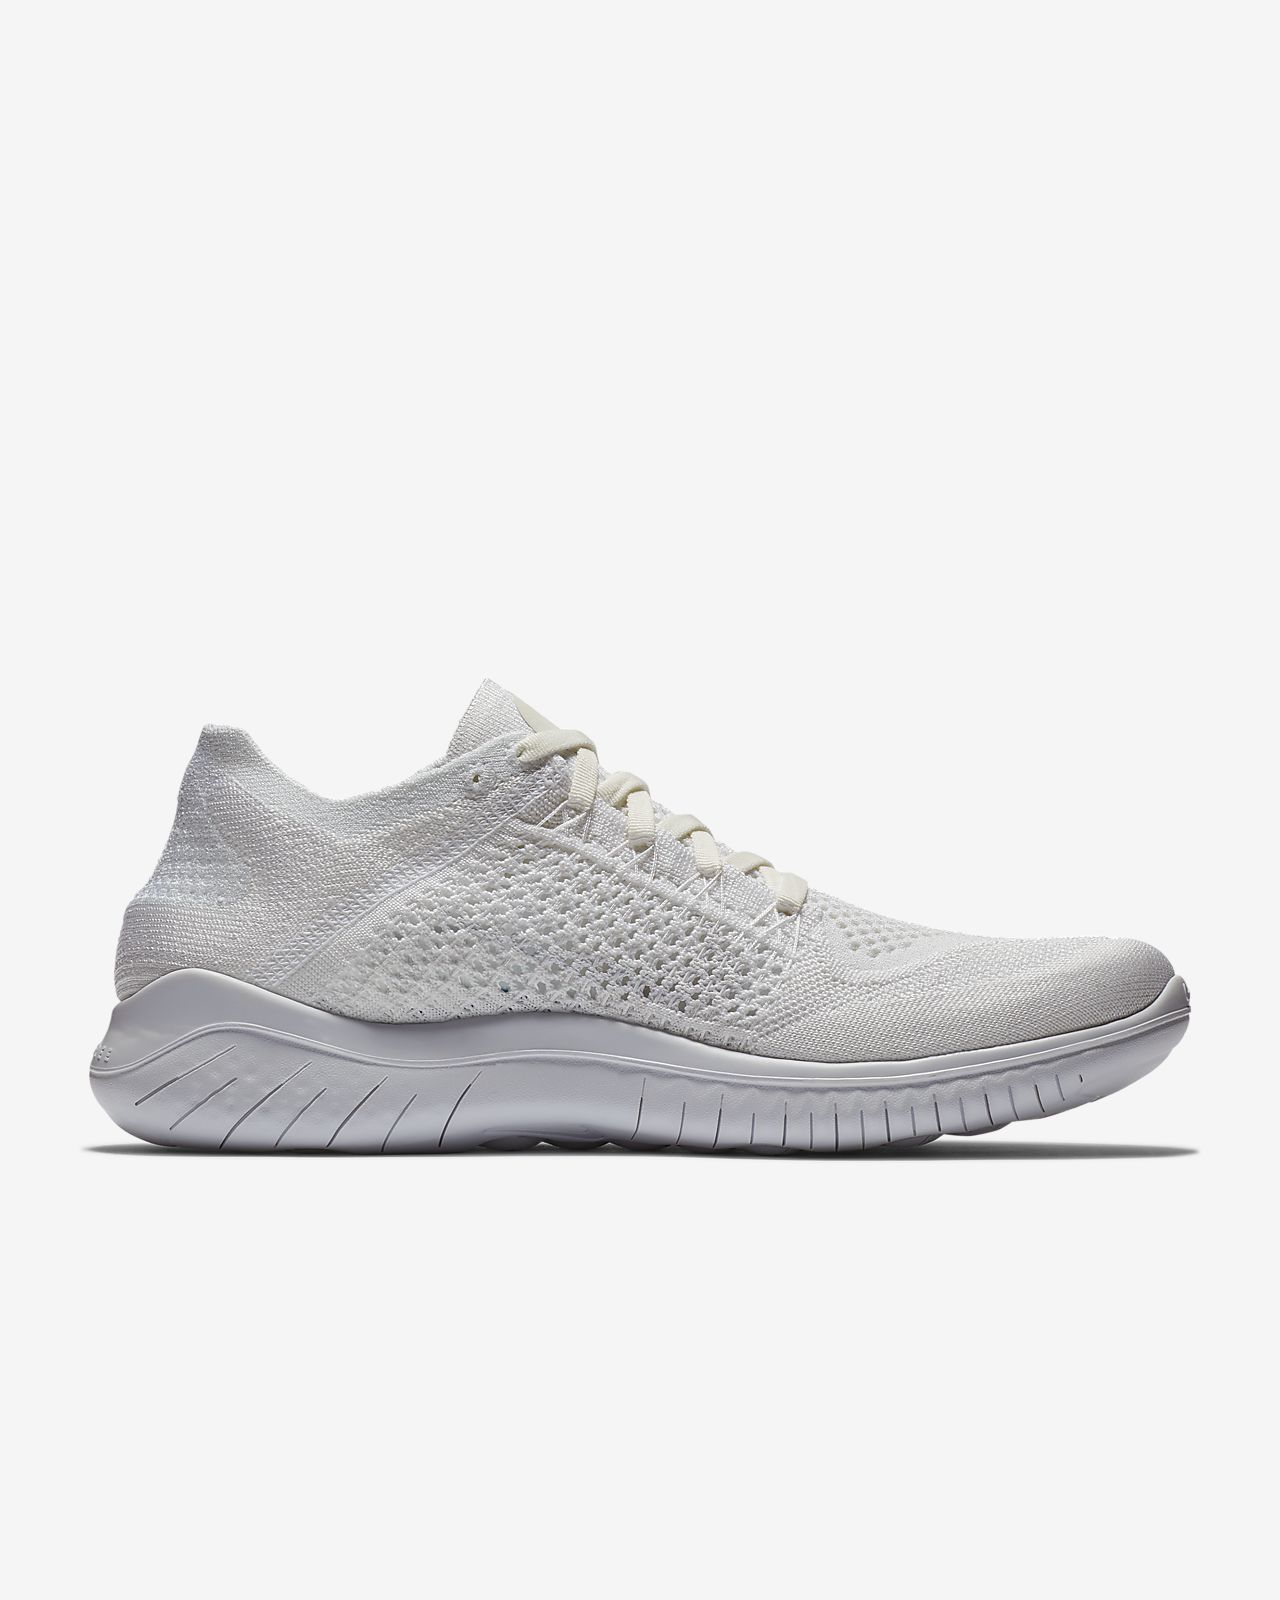 buy popular 020e4 1e38a ... Nike Free RN Flyknit 2018 Men s Running Shoe